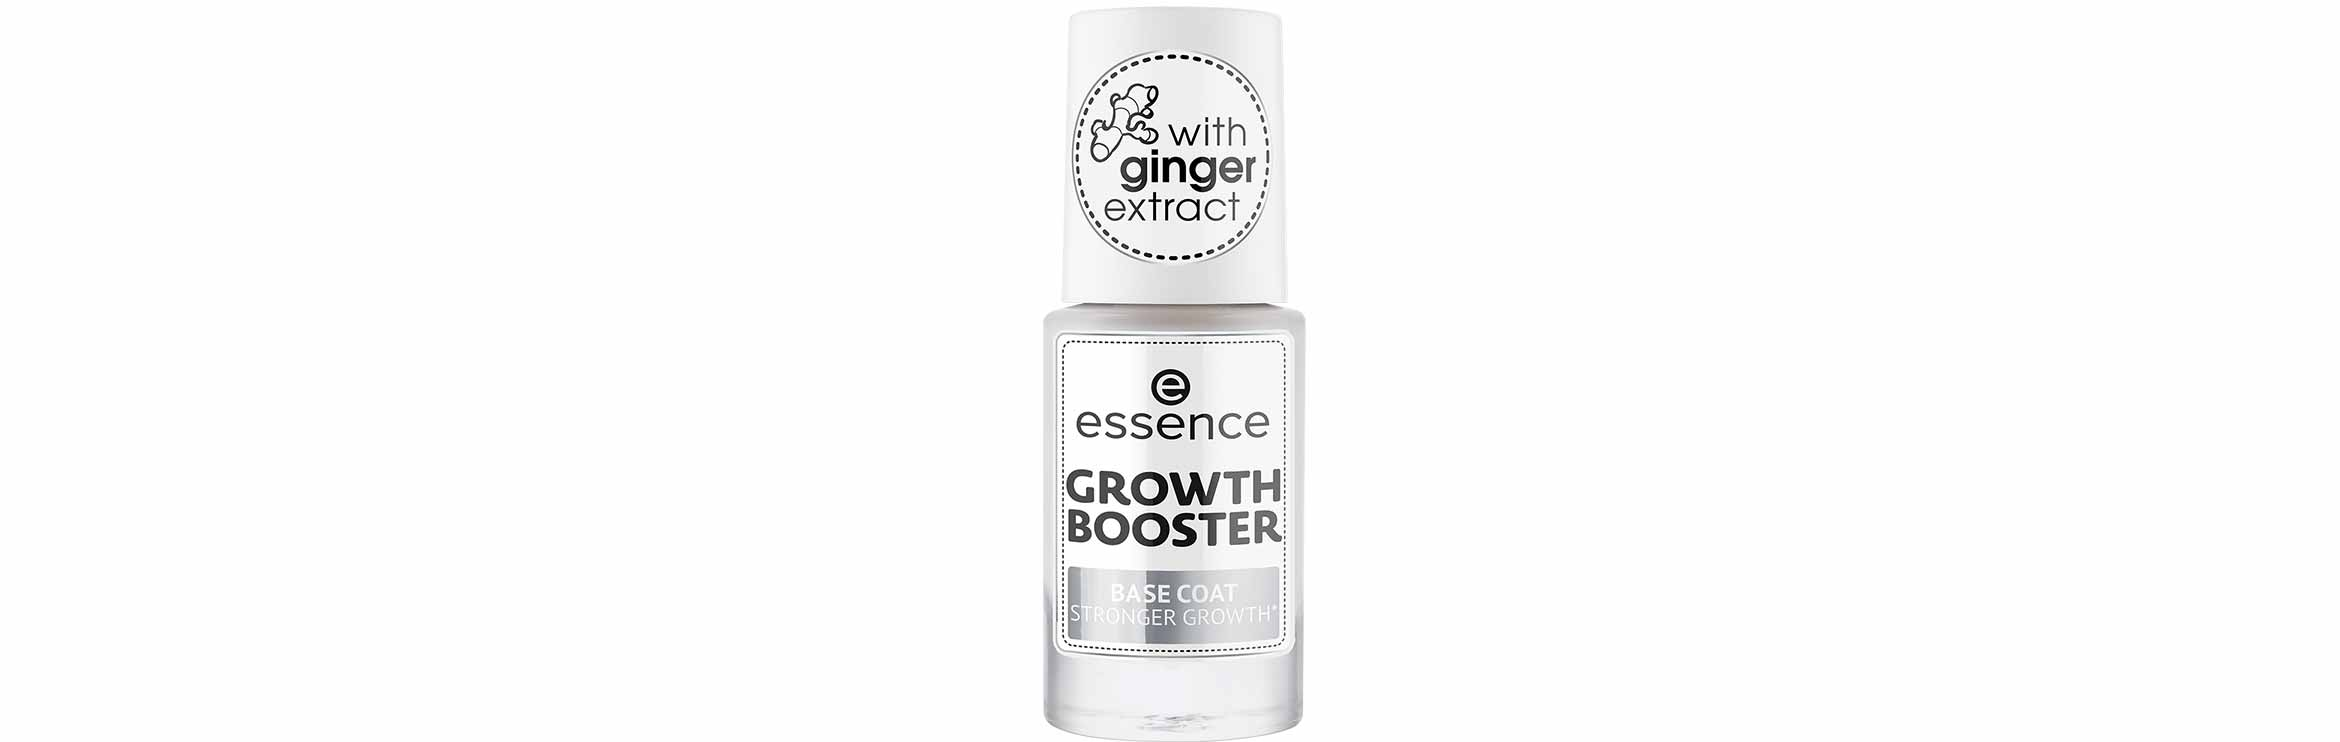 essence-growth-booster-base-coat-stronger-growth